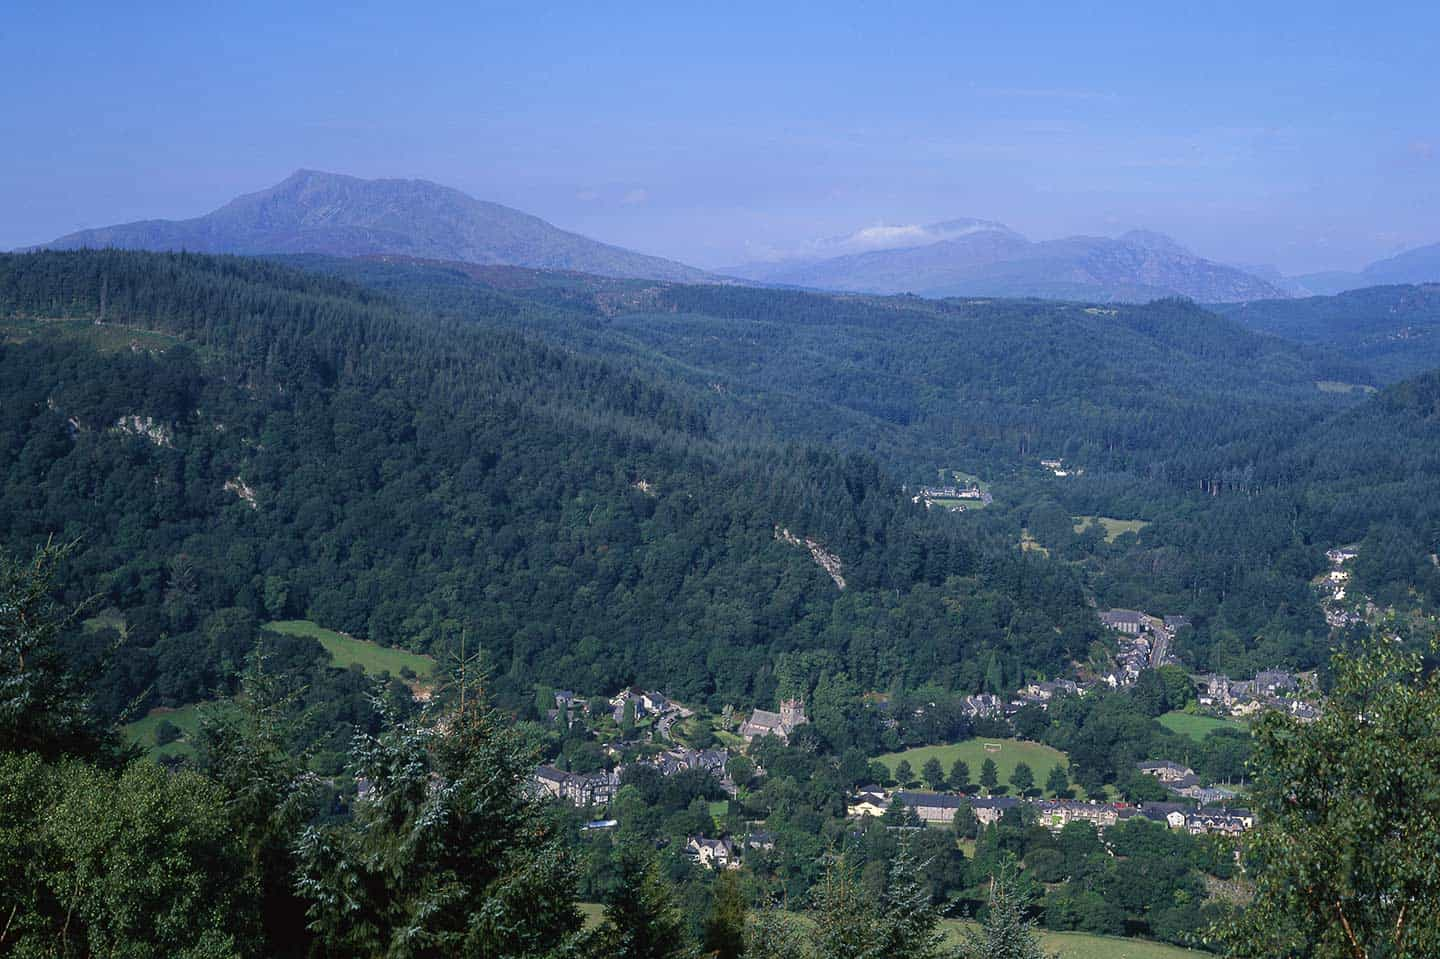 Image of Betws-y-Coed village and Snowdonia mountains